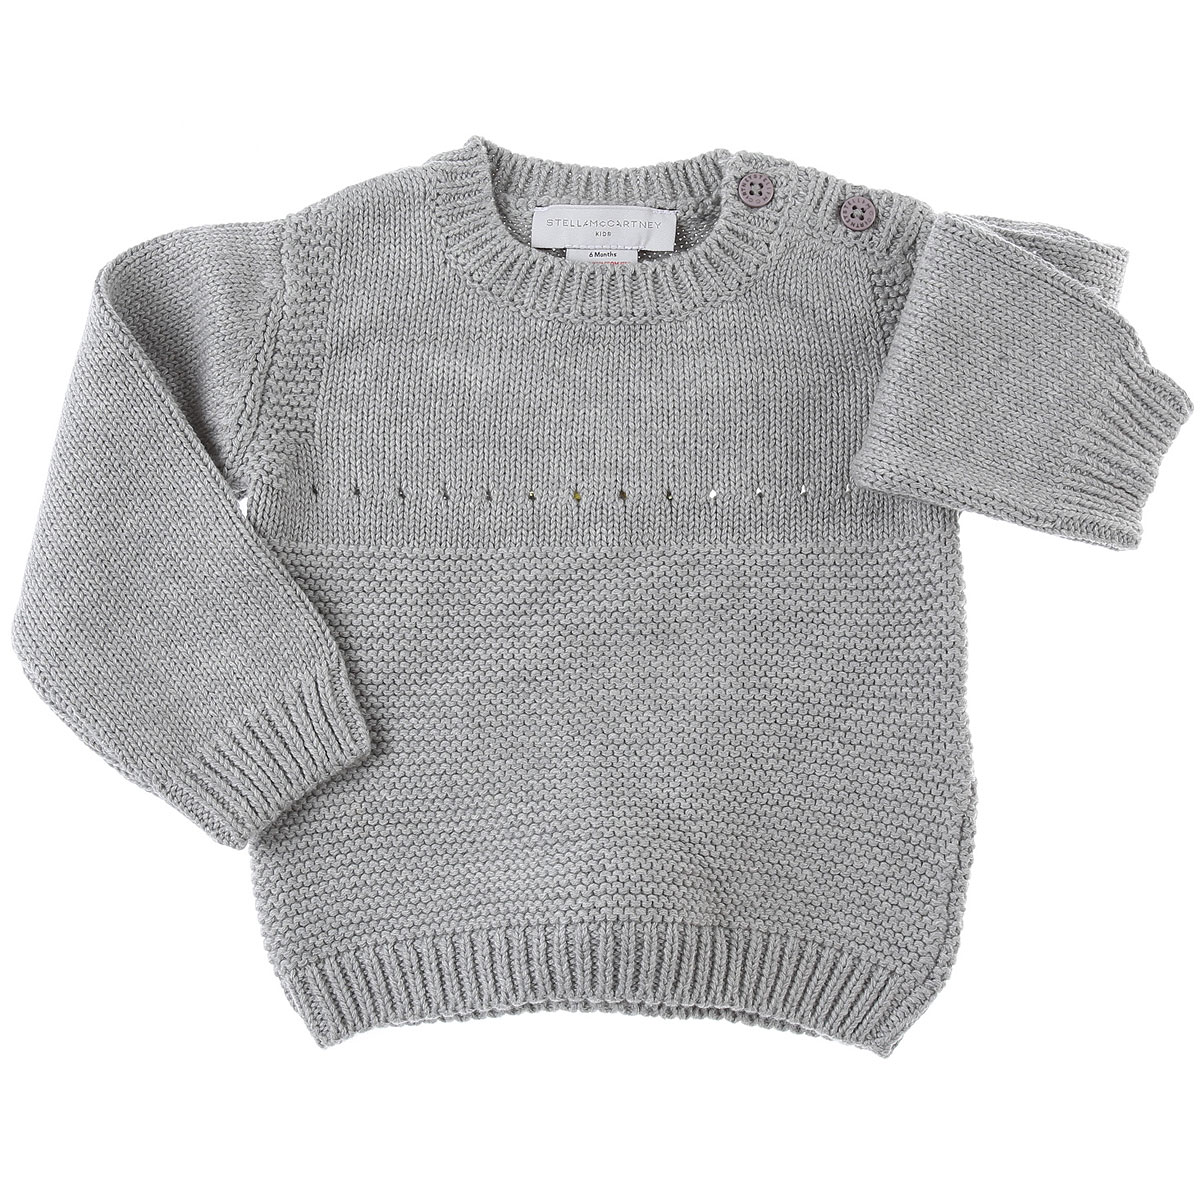 Stella McCartney Baby Sweaters for Boys On Sale, Grey, Cotton, 2019, 12 M 18M 3M 6M 9M